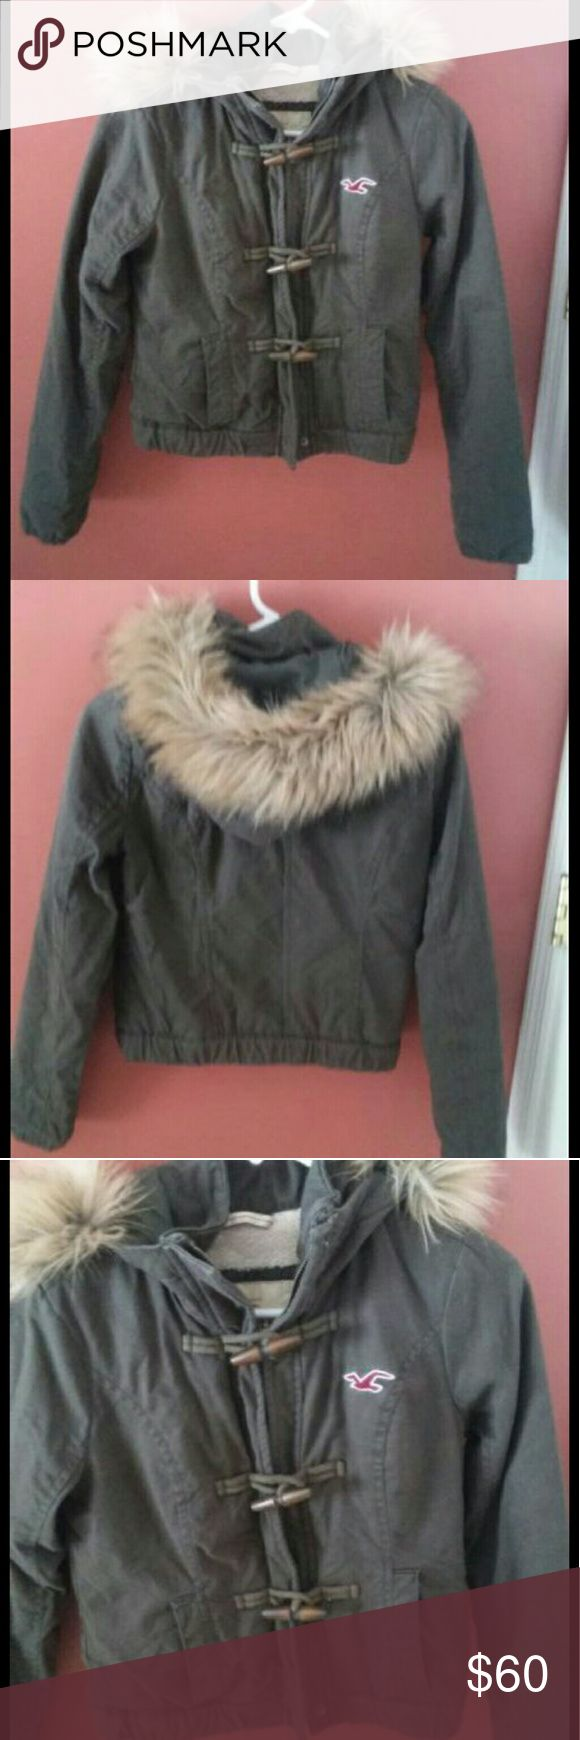 Girls Hollister coat Girls Hollister coat, size XL but is very small. Only worn once, in very good condition and kept clean. Hollister Jackets & Coats